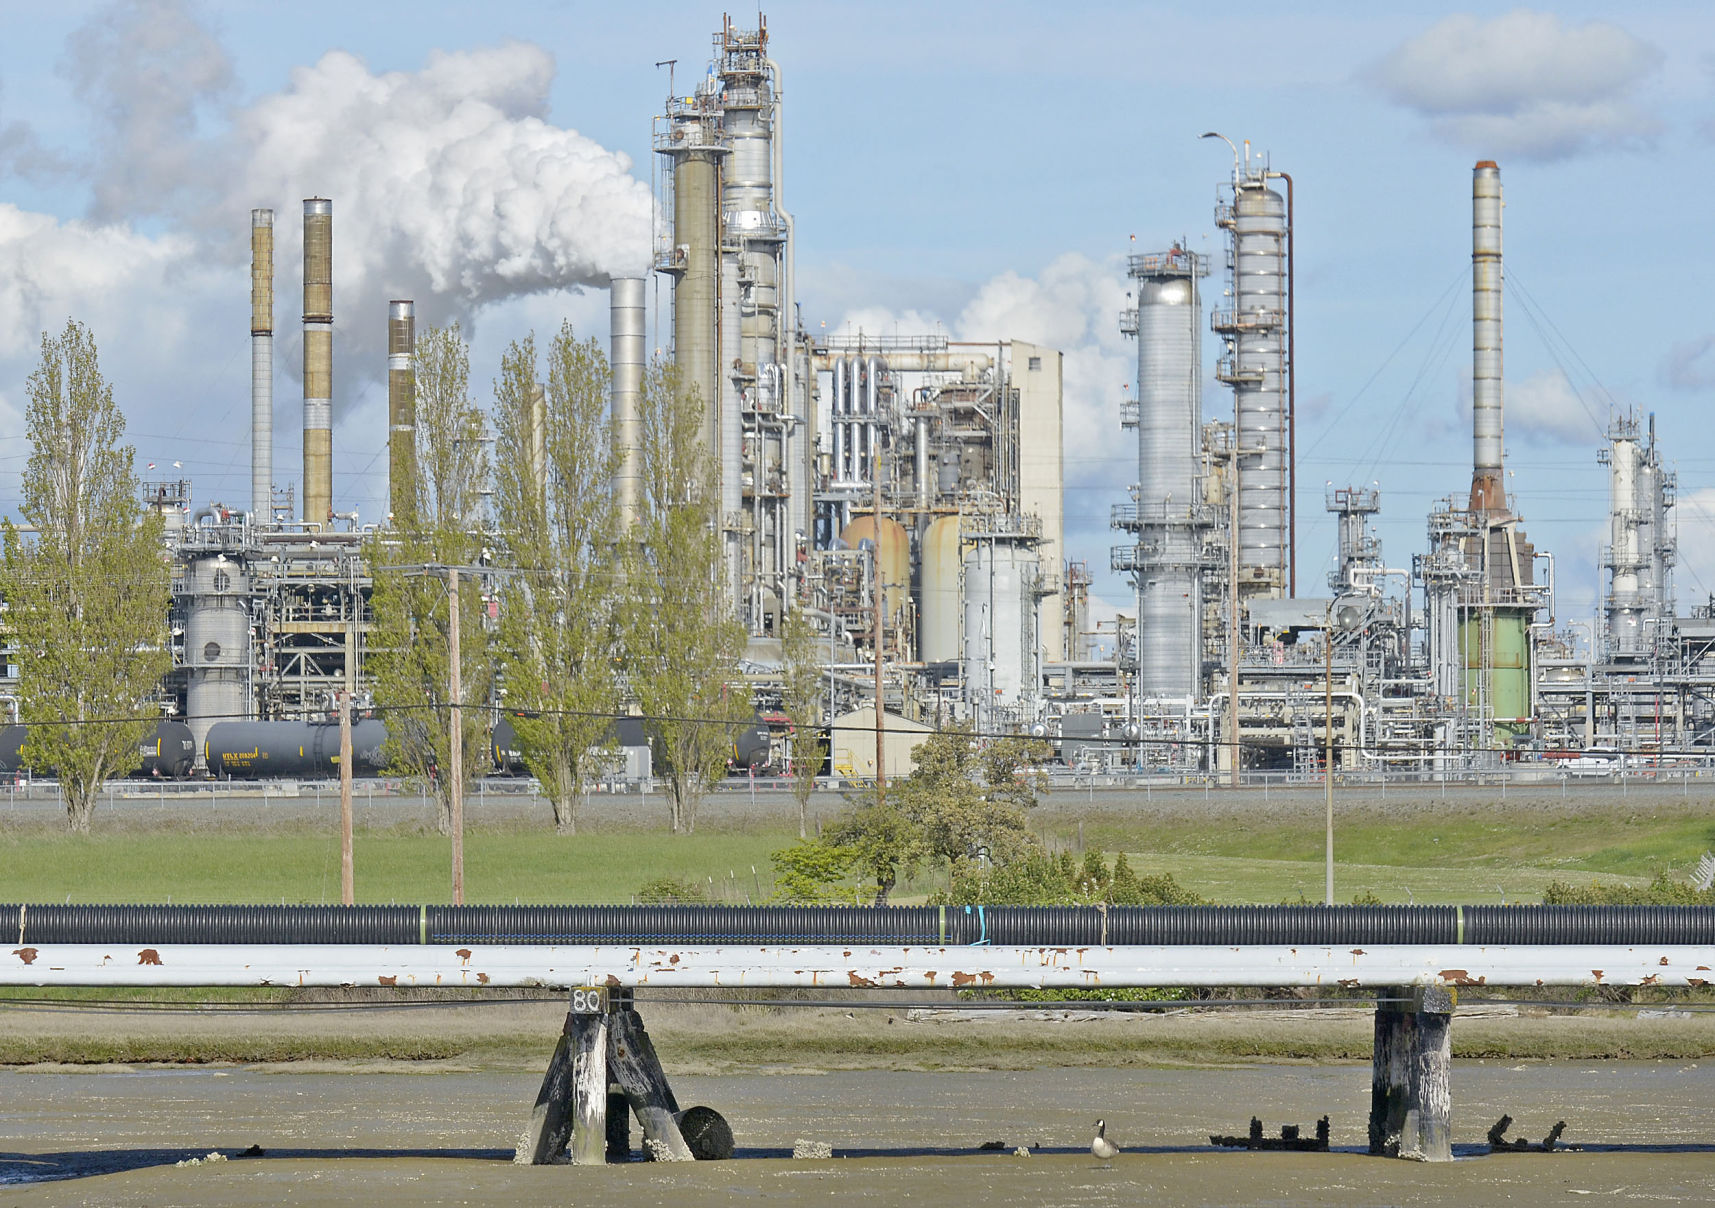 Skagit County hearing examiner approves Andeavor permit